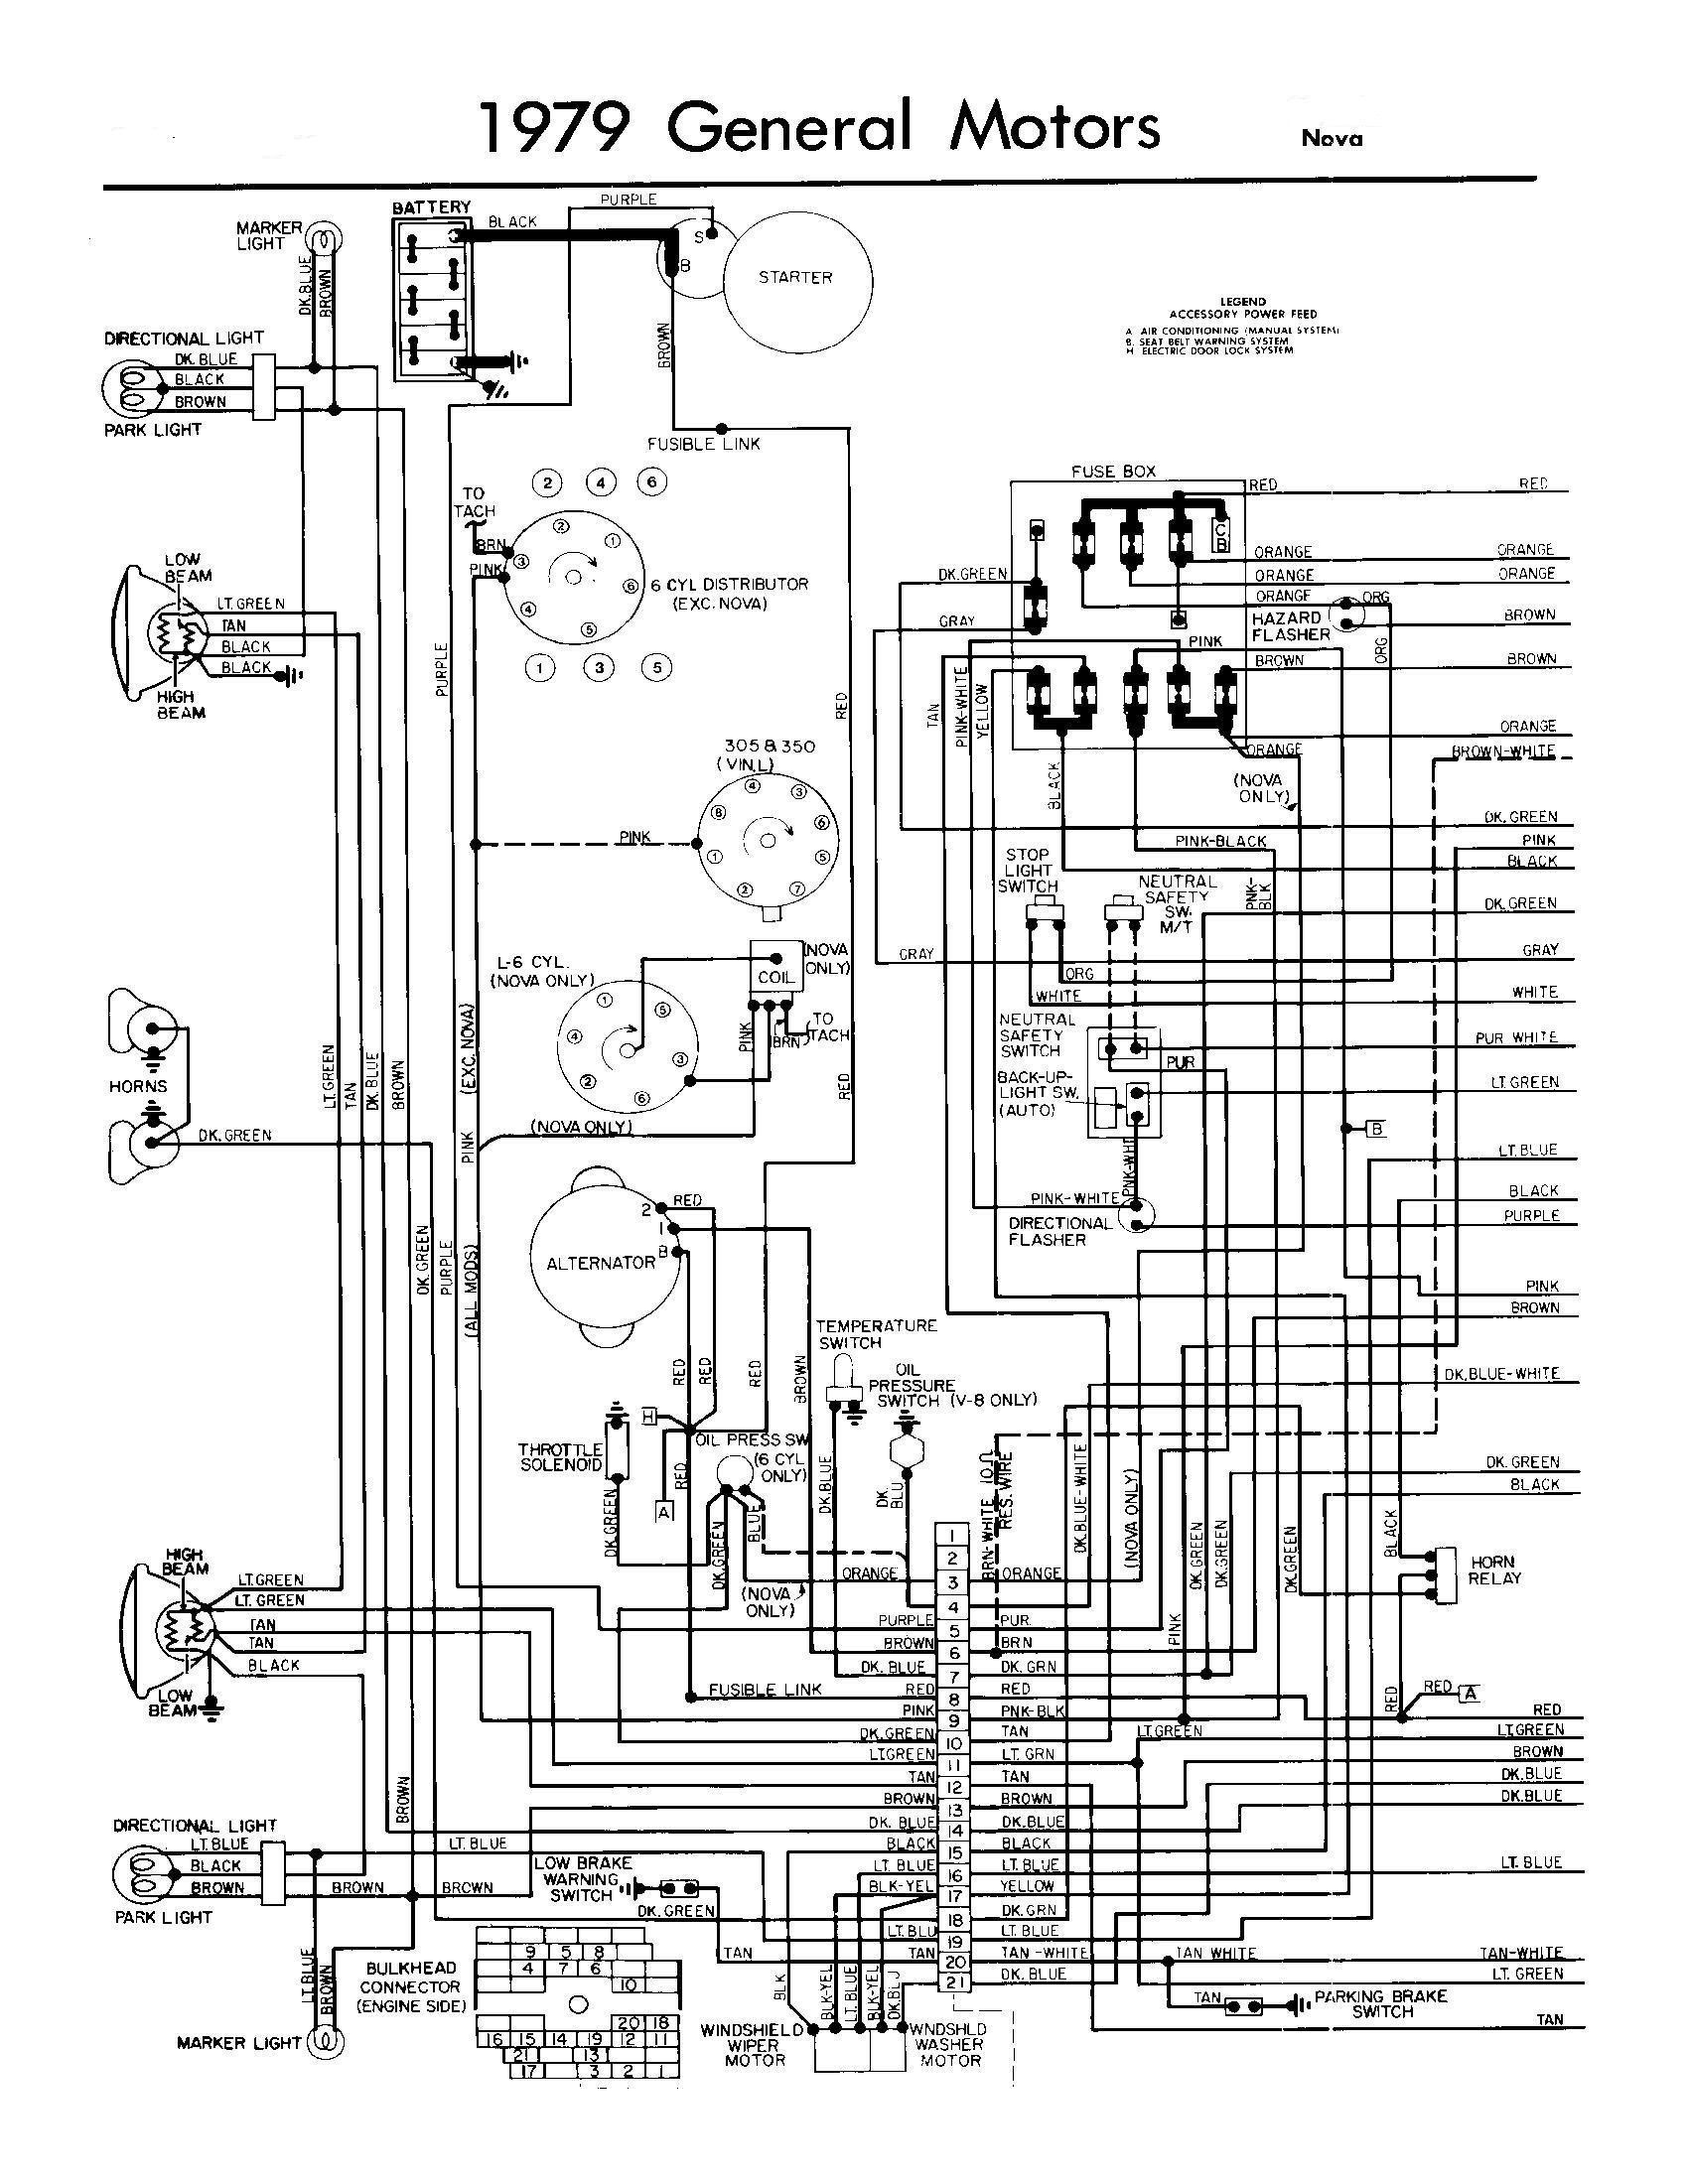 76 Chevy Fuse Box For - Wiring Diagram Rows on 84 corvette wiring diagram, 84 k2500 wiring diagram, 84 camaro wiring diagram, 84 caprice wiring diagram, 84 k5 blazer wiring diagram, 84 cavalier wiring diagram, 84 k20 wiring diagram,